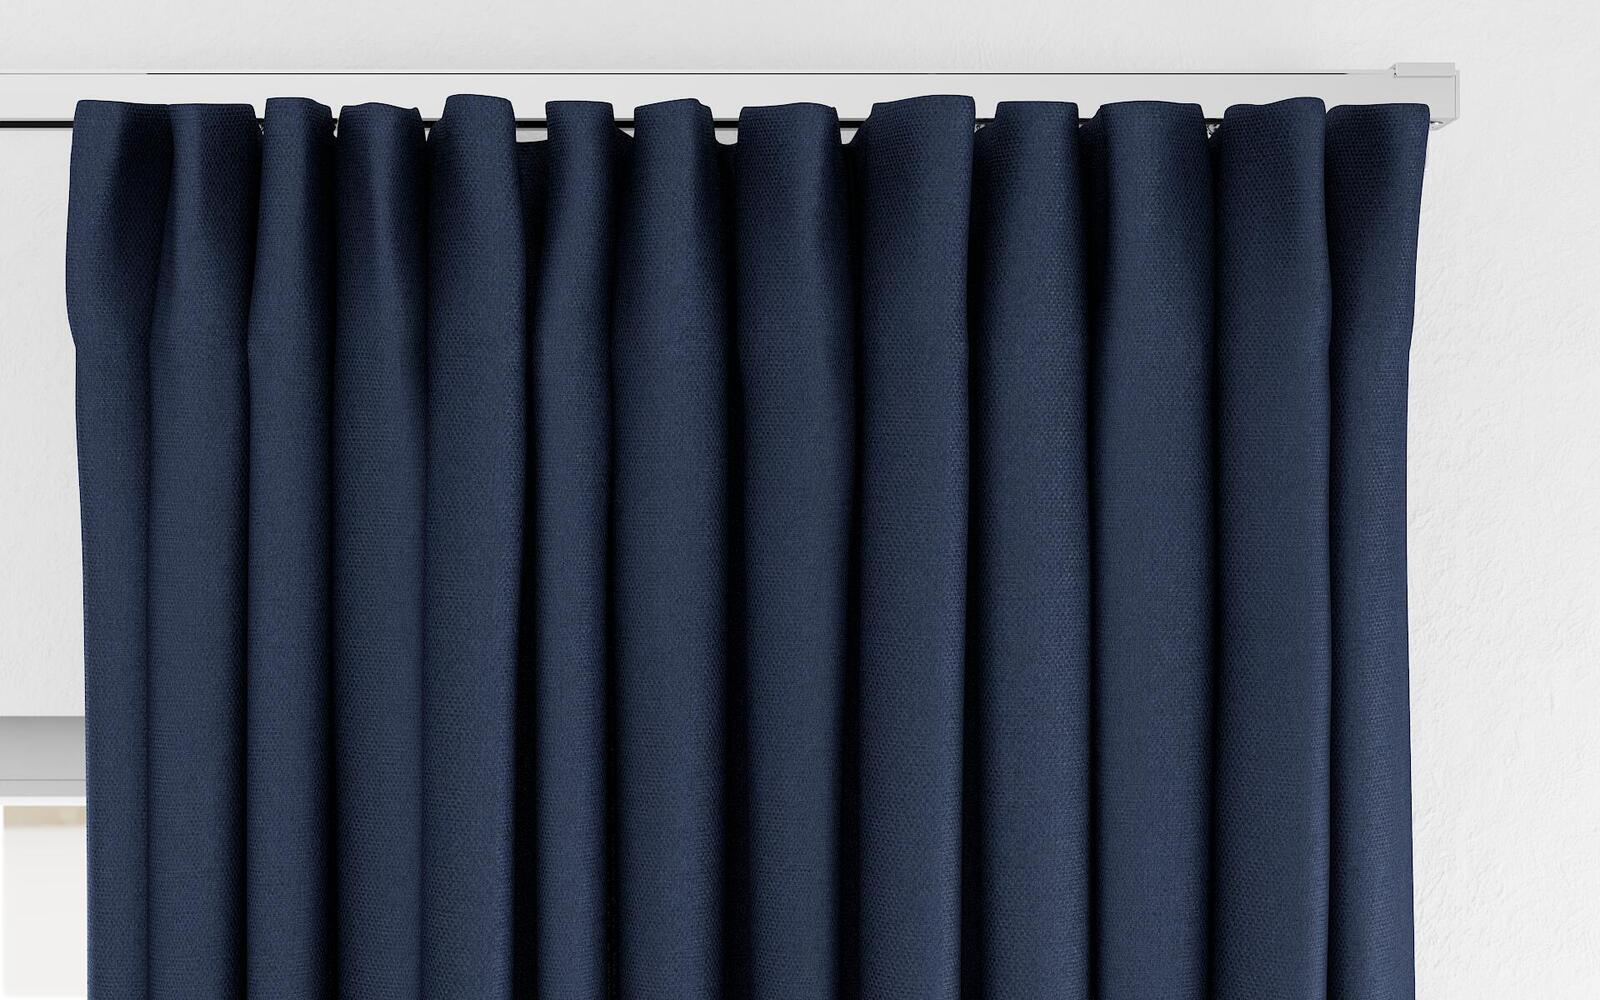 Photo of the fabric 10957-101 Nightshift Cobalt, by Zepel.